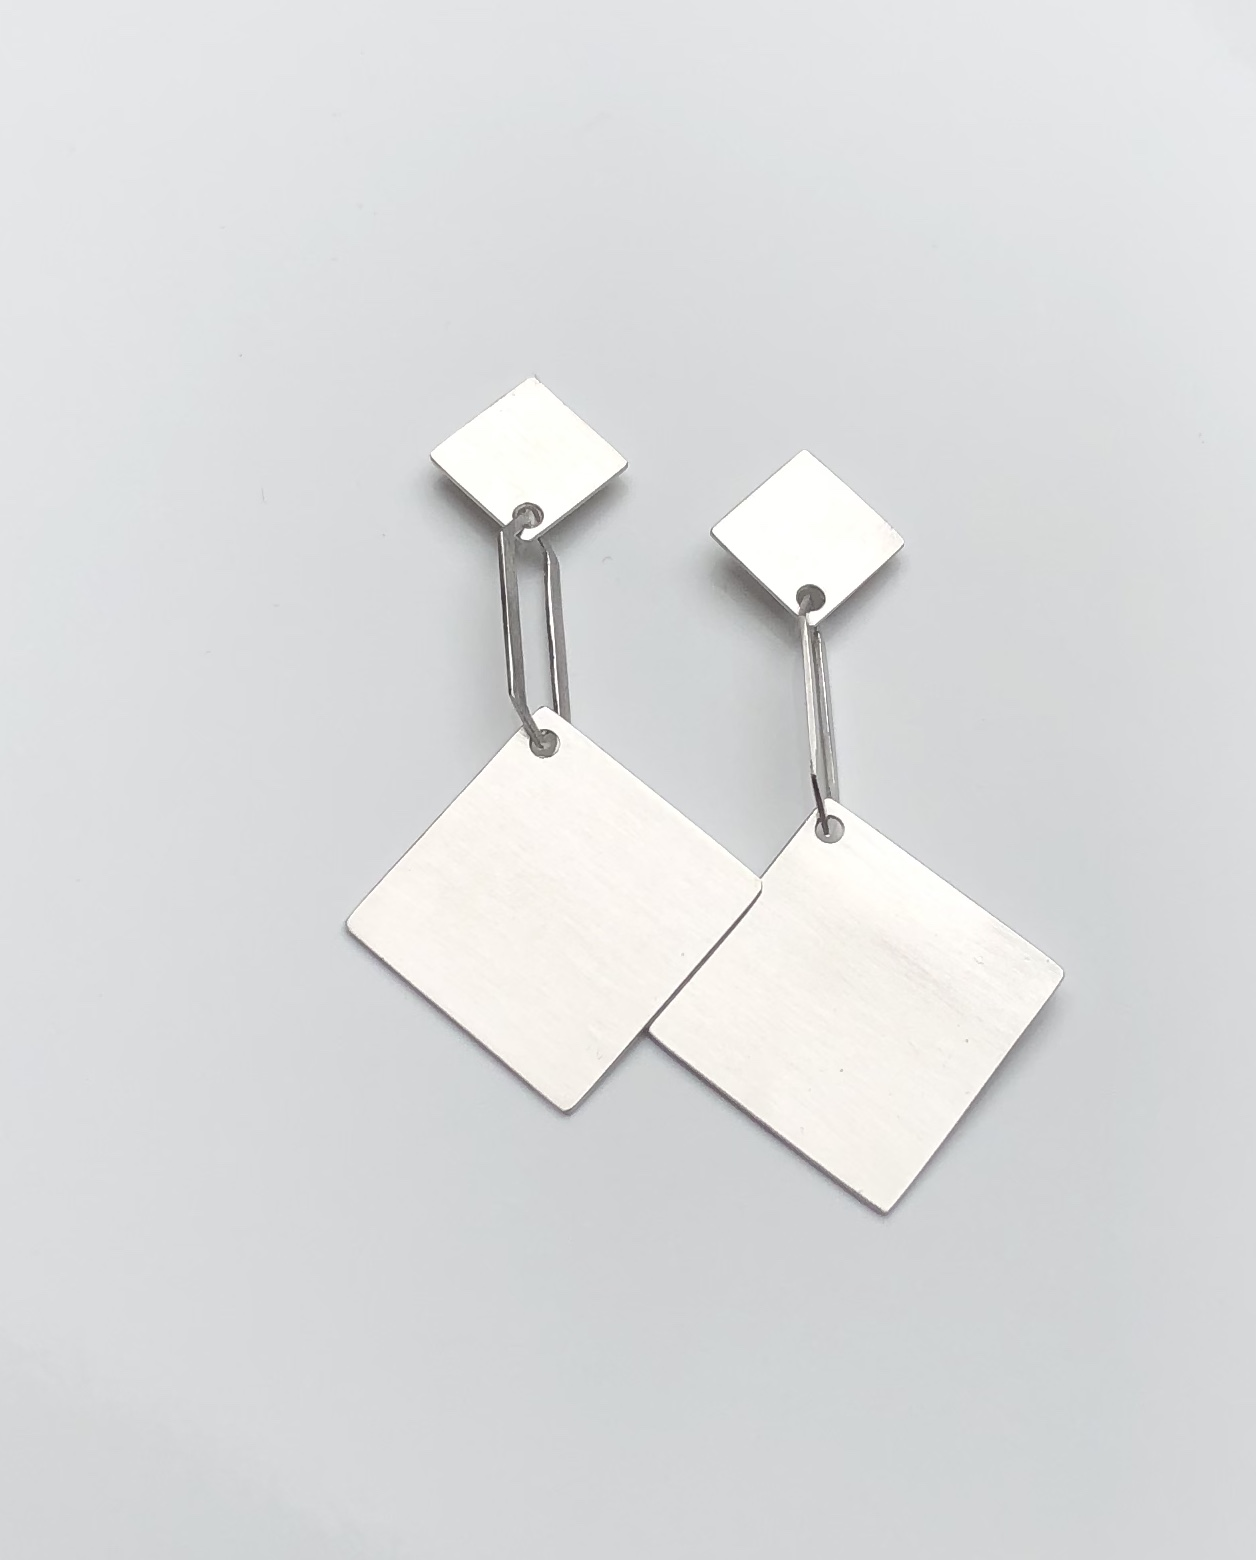 silver earrings : 230 €